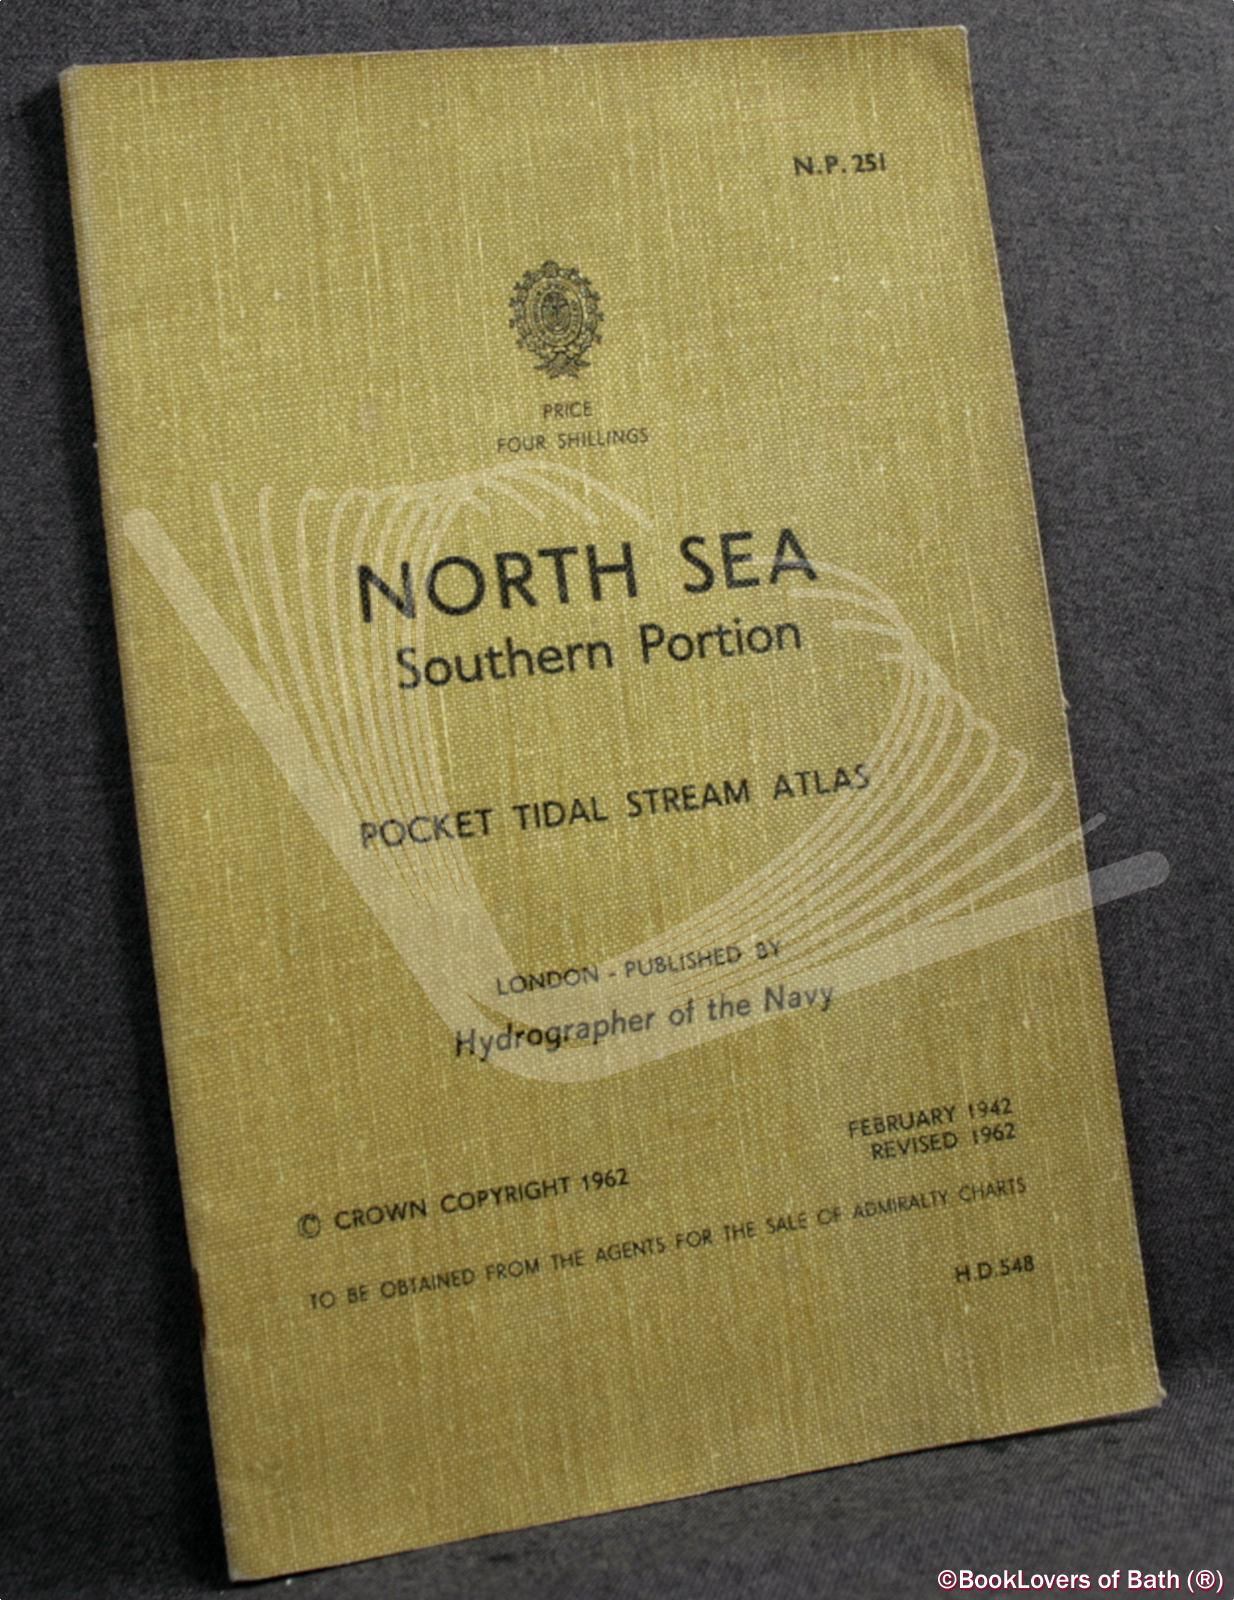 North Sea Southern Portion - Anon.